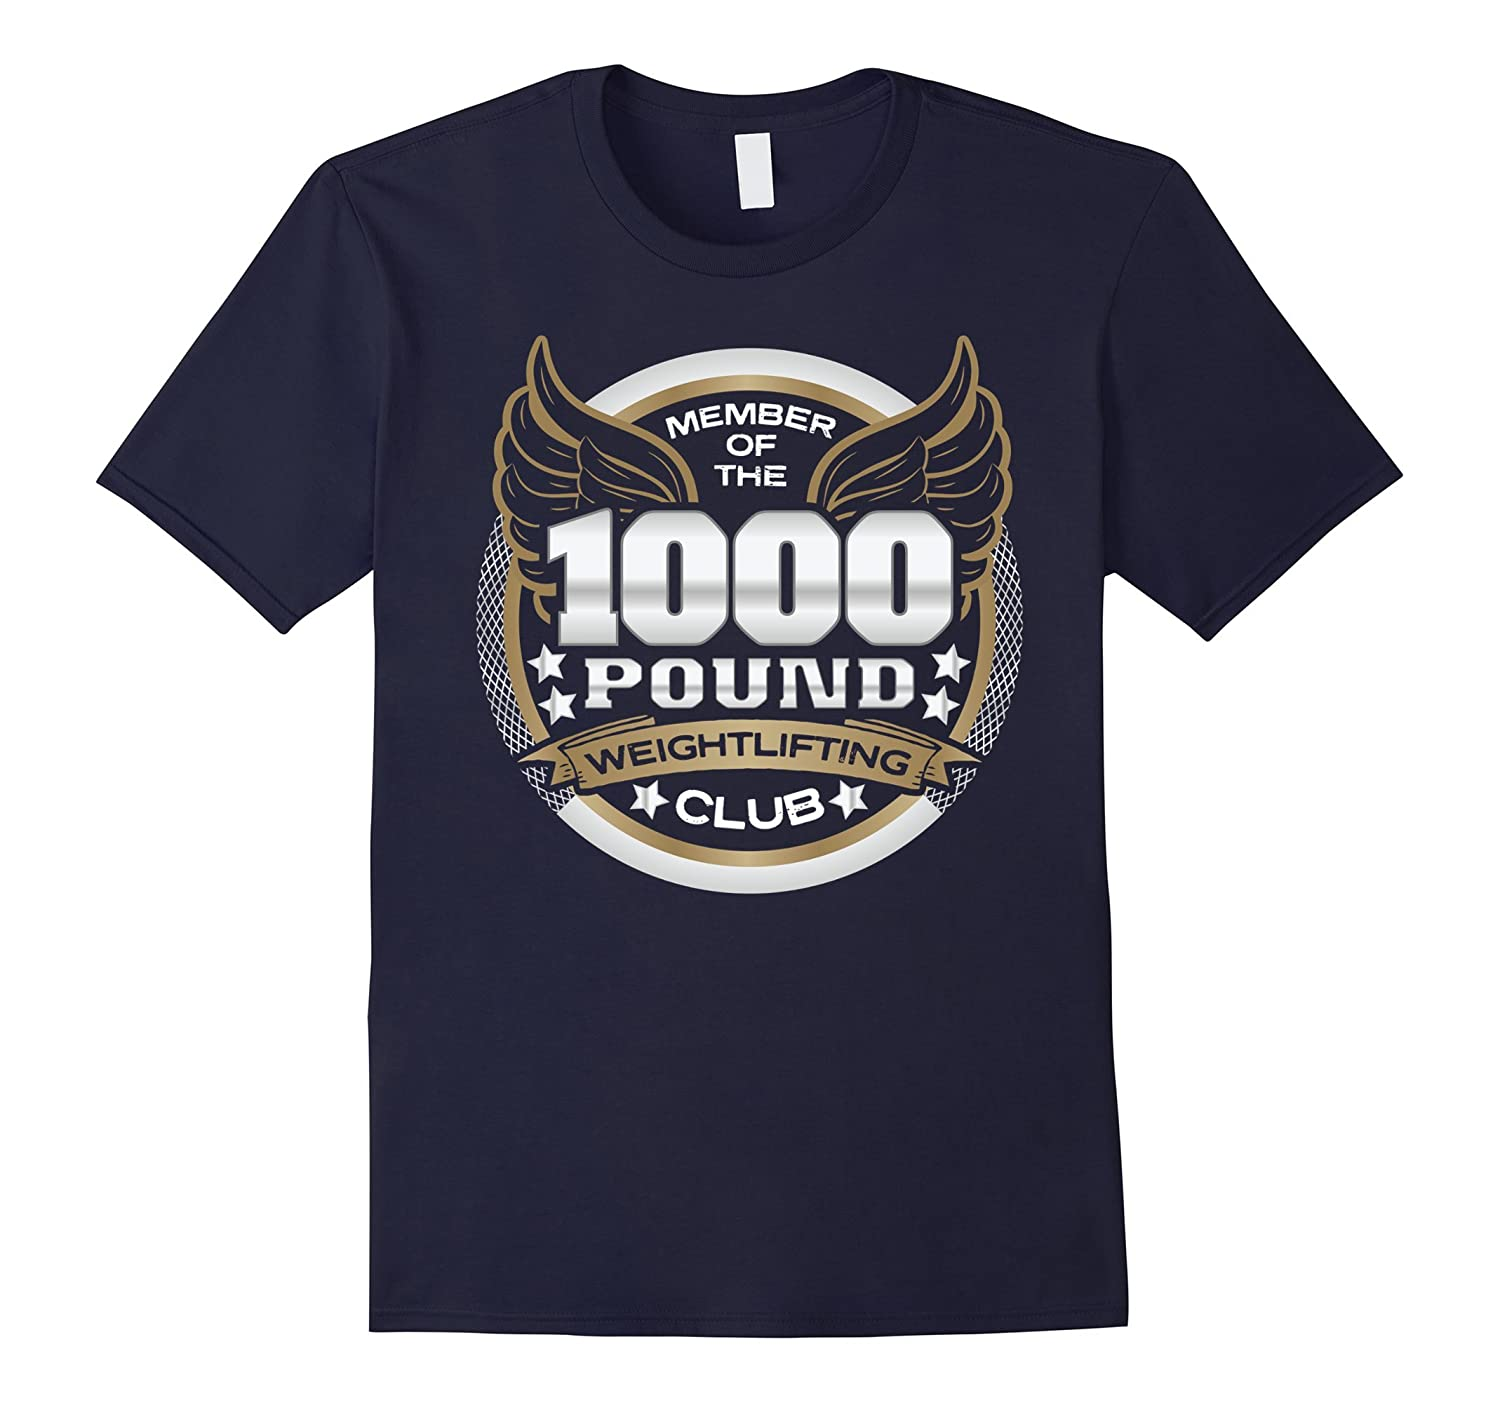 1000 Pound Weightlifting Club Member T-Shirt-TJ